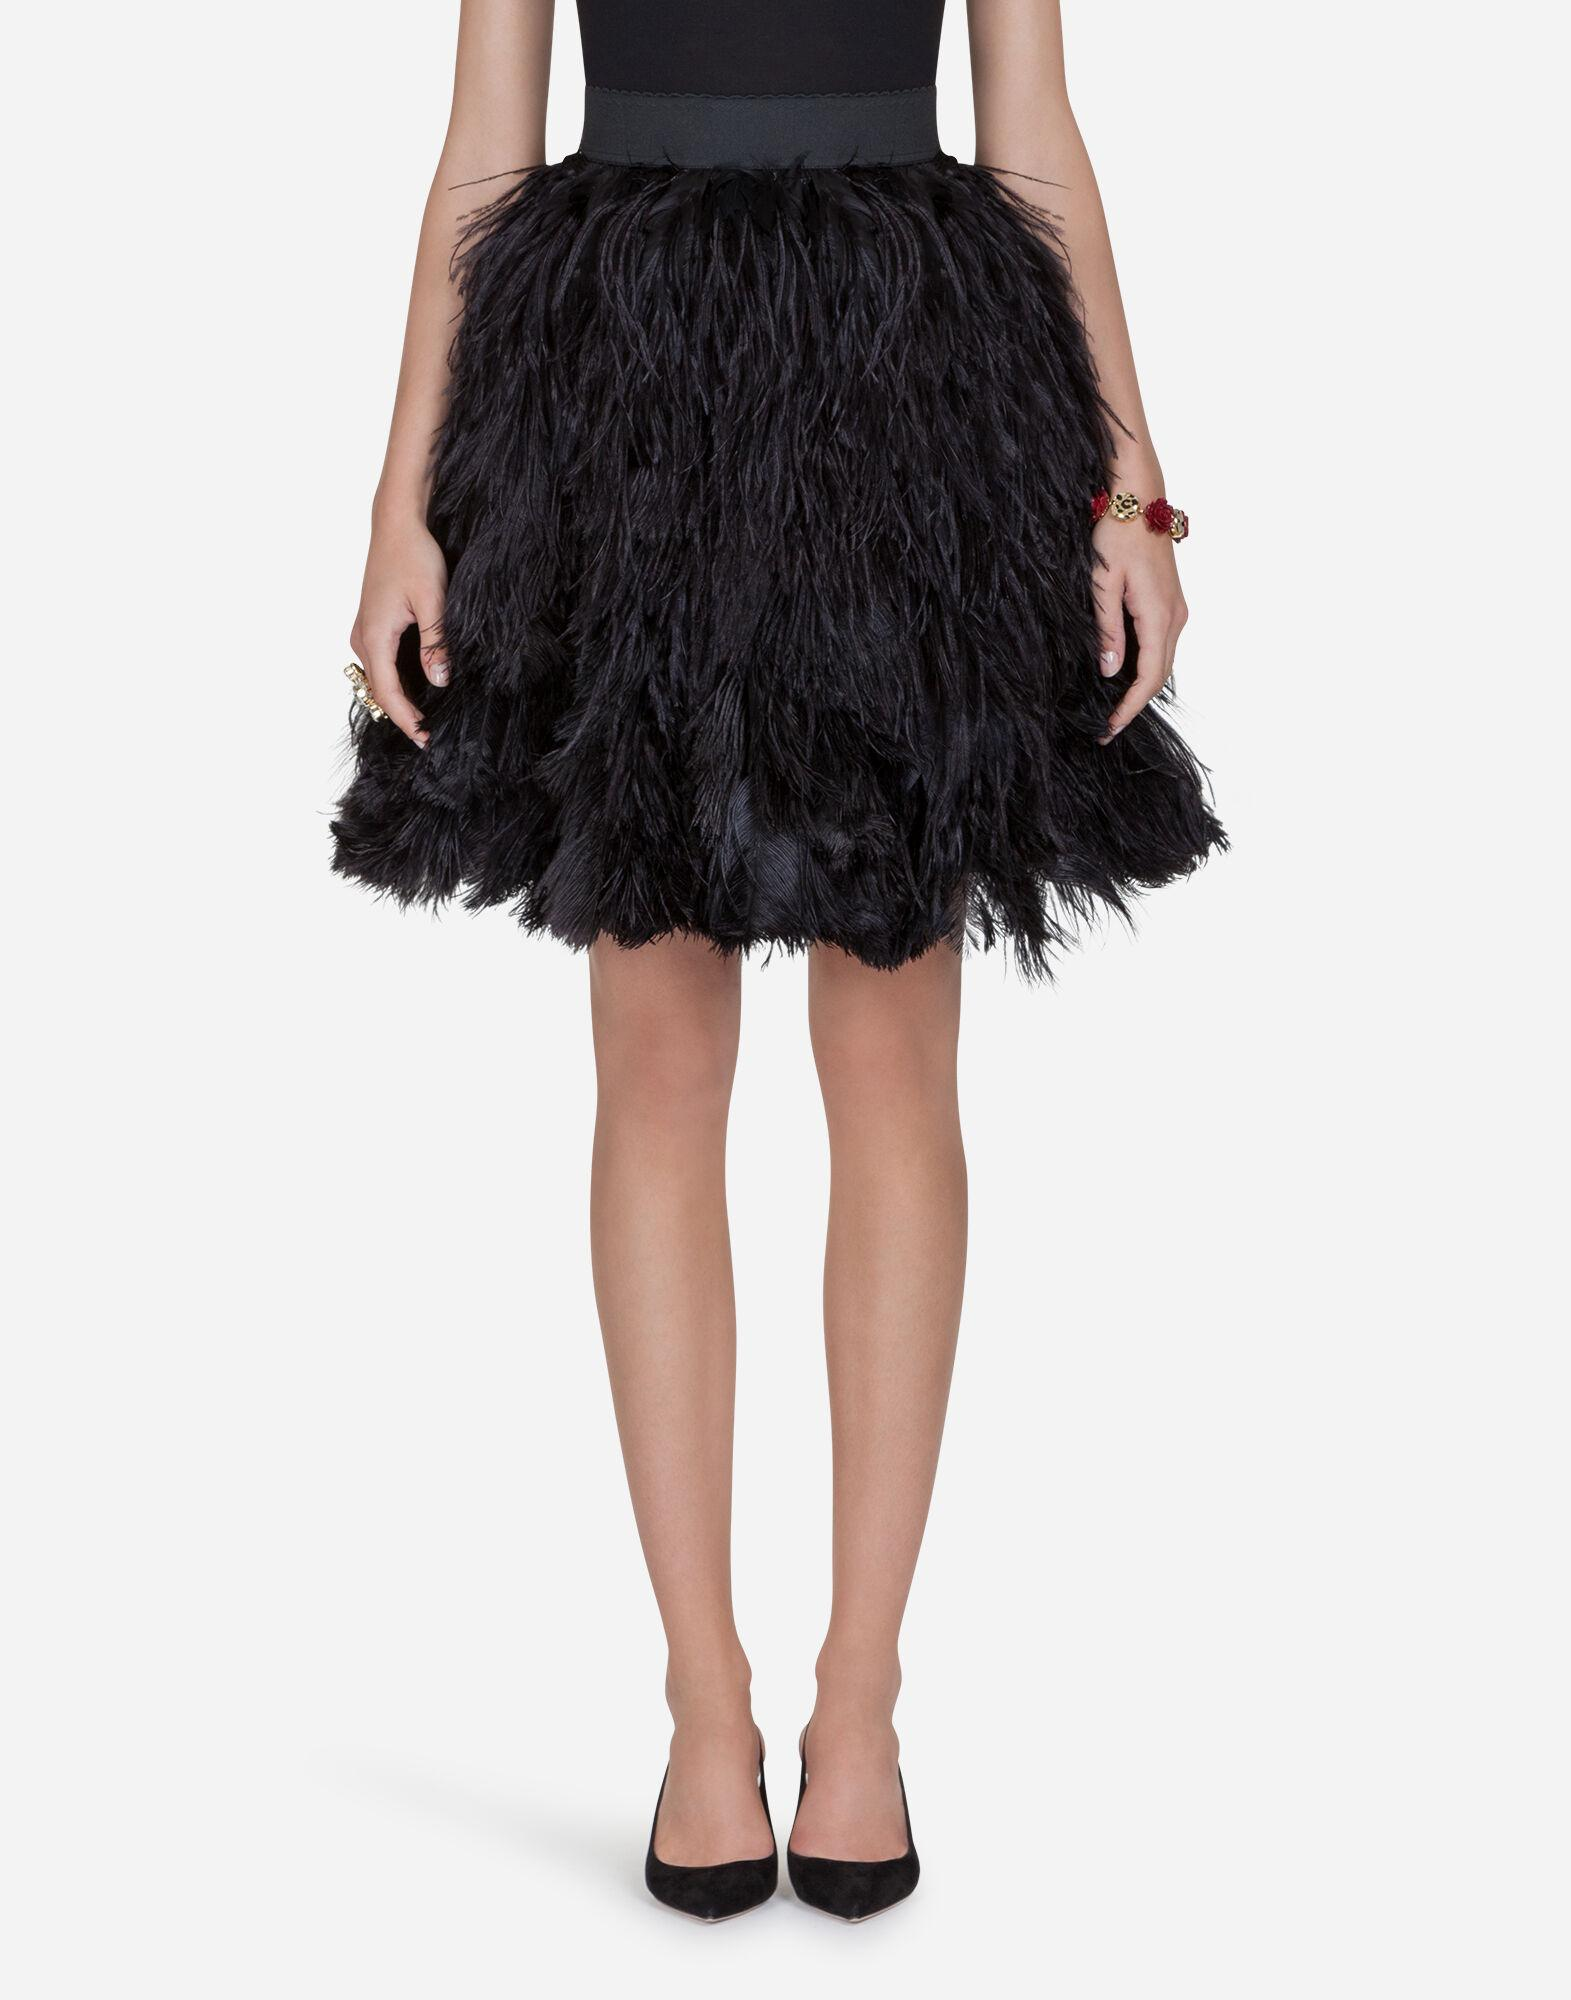 Flounce skirt in feathers